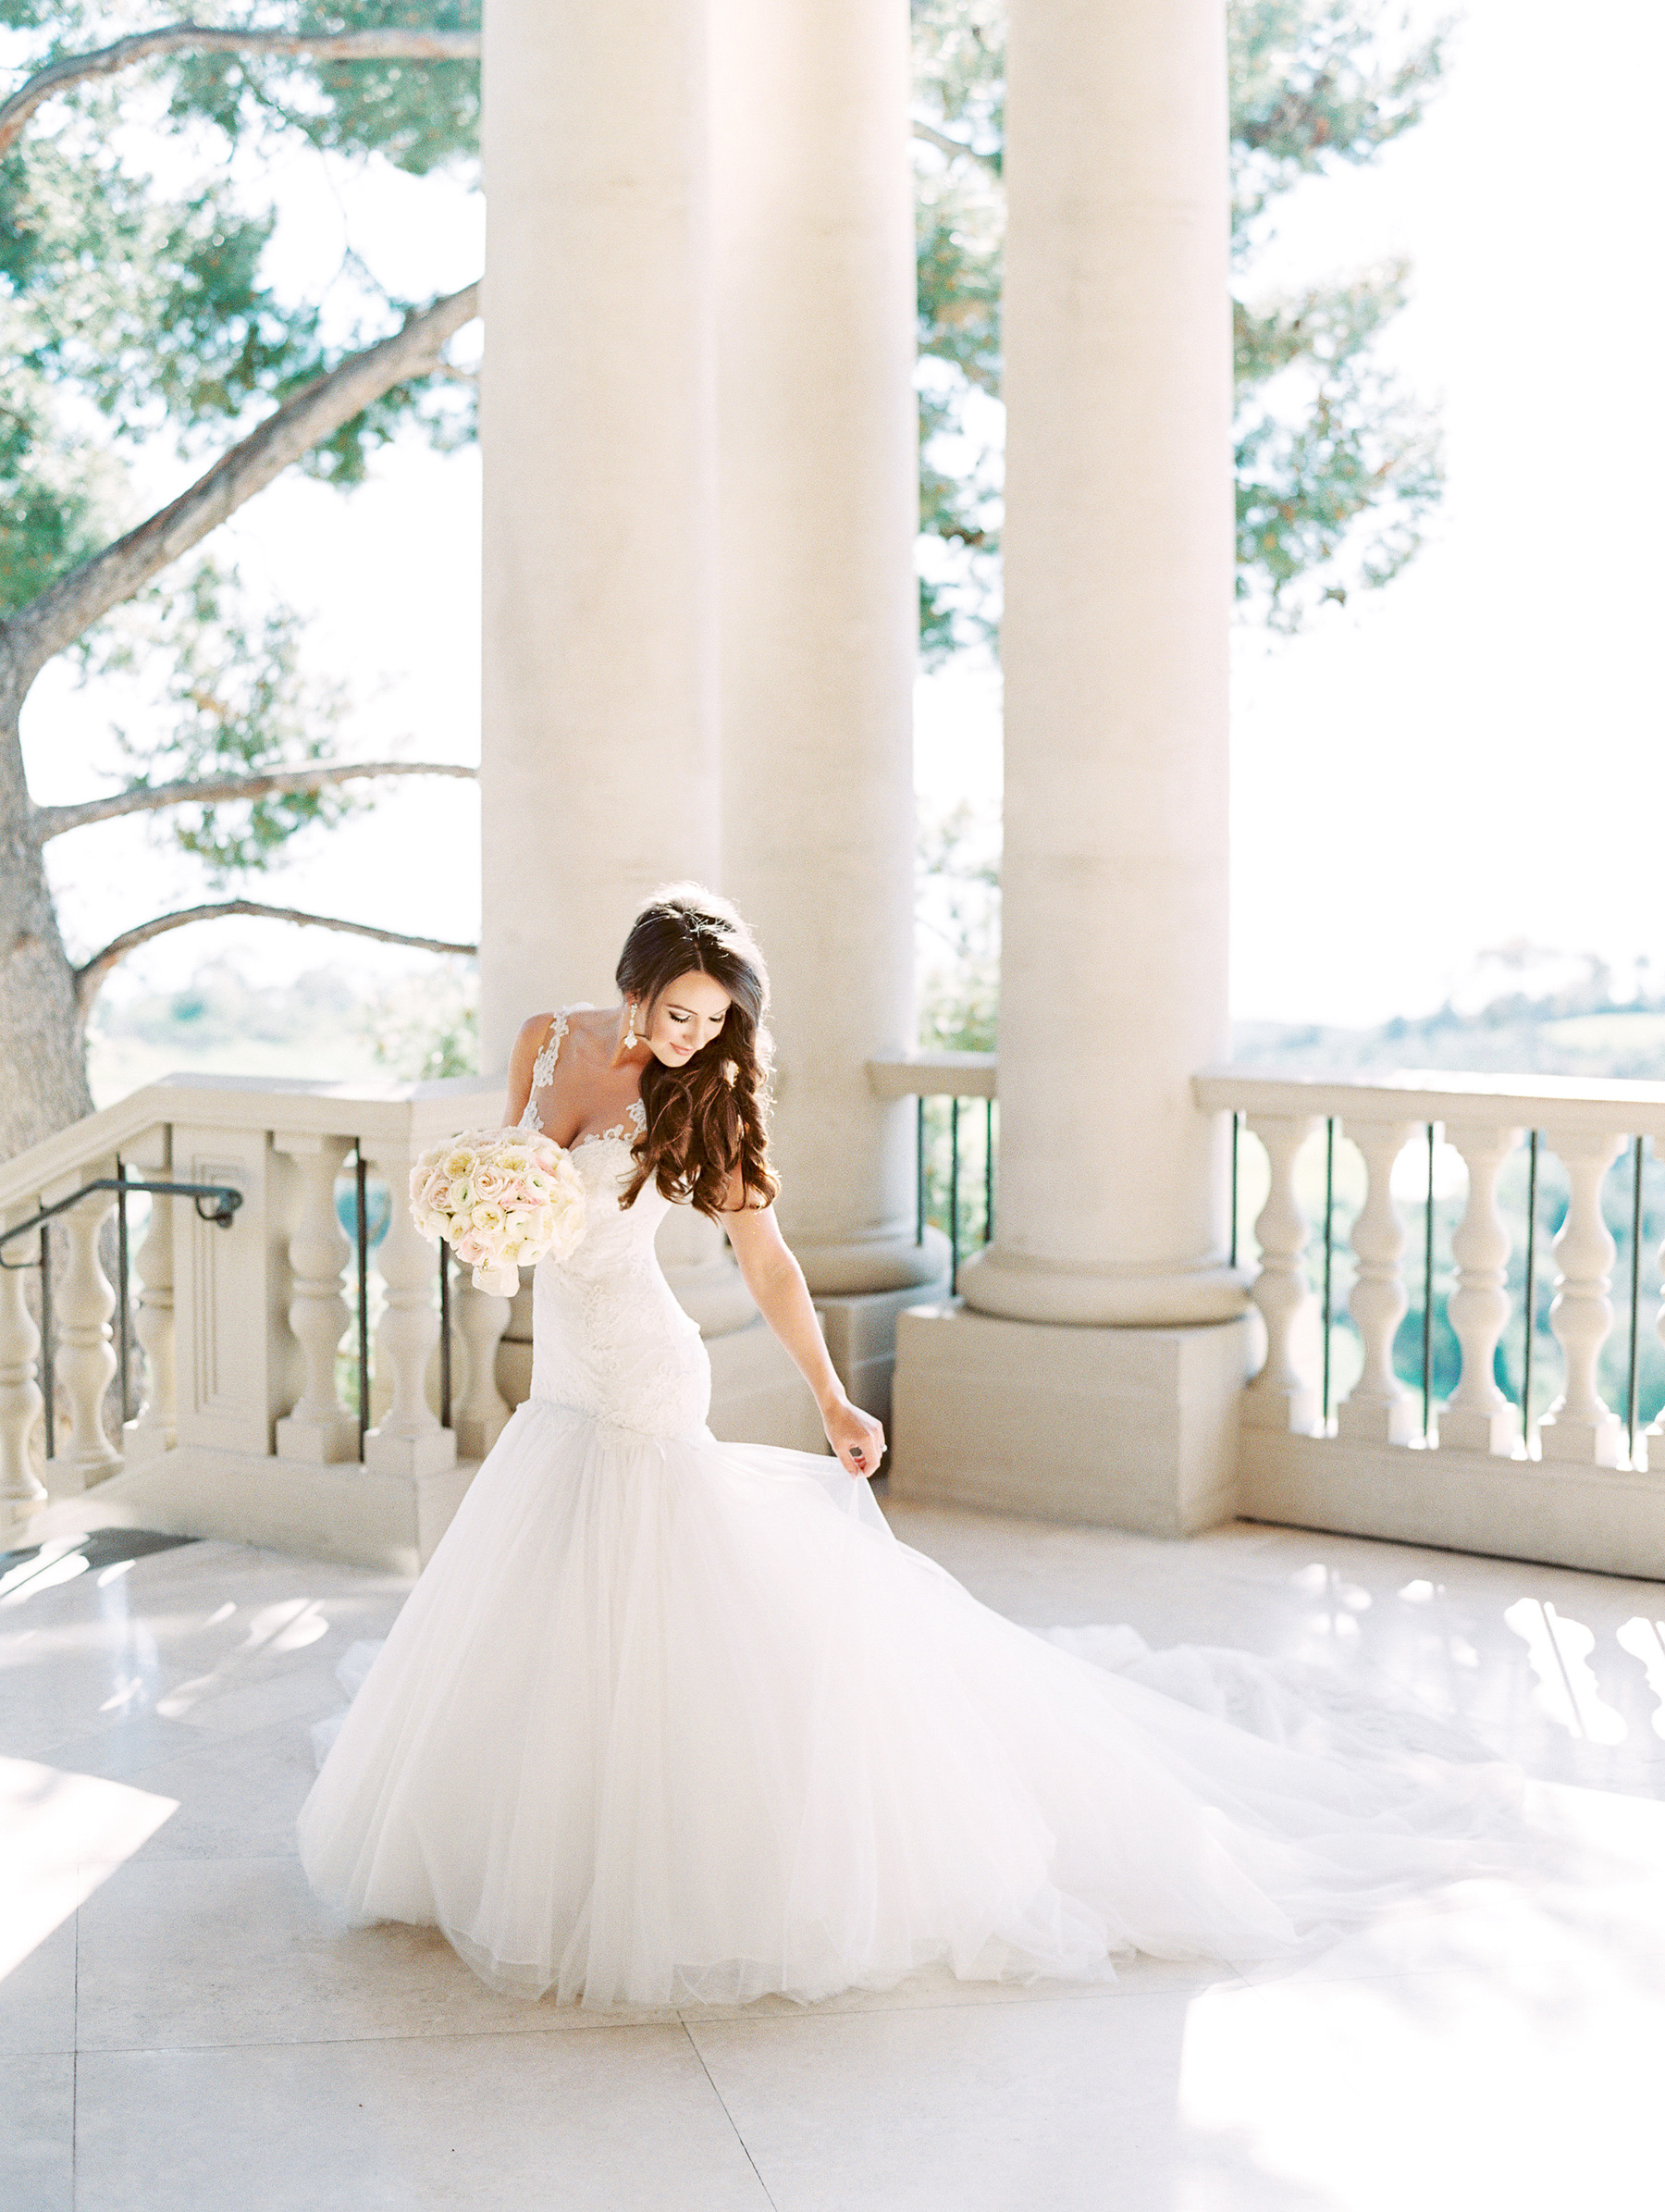 Pelican-hill-wedding-04.JPG